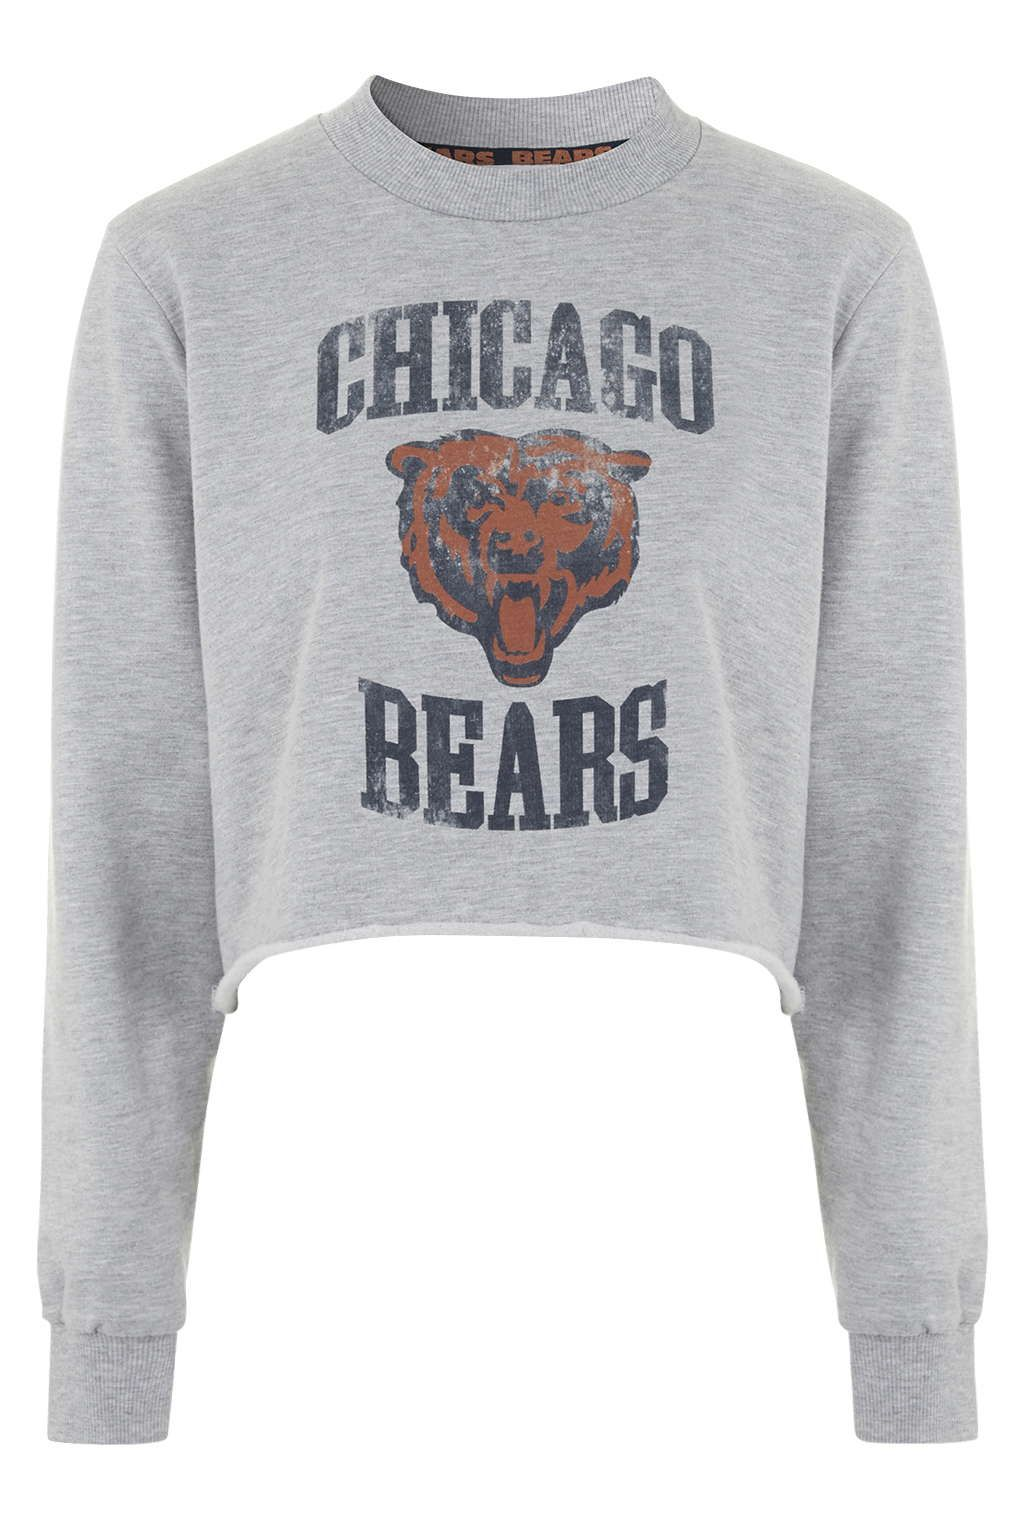 e081e51d Chicago Bears Sweatshirt By Tee and Cake in 2019 | College clothes ...